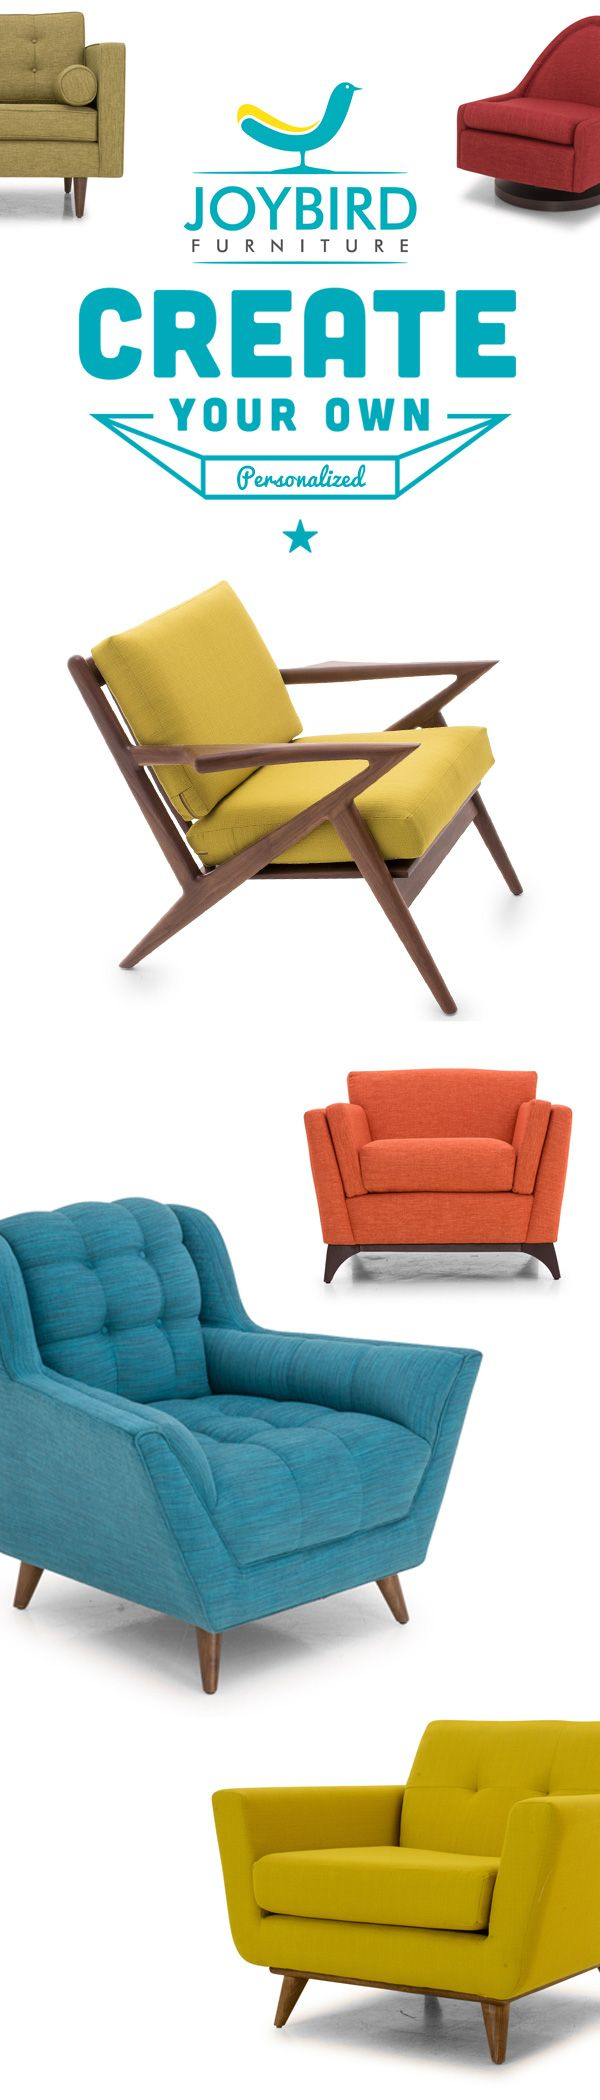 Make a Statement - Don't be generic with your furniture choice. Our design gets attention! Fully custom mid-century modern furniture. Free delivery + Free returns + lifetime warranty.  Request free swatch samples today!